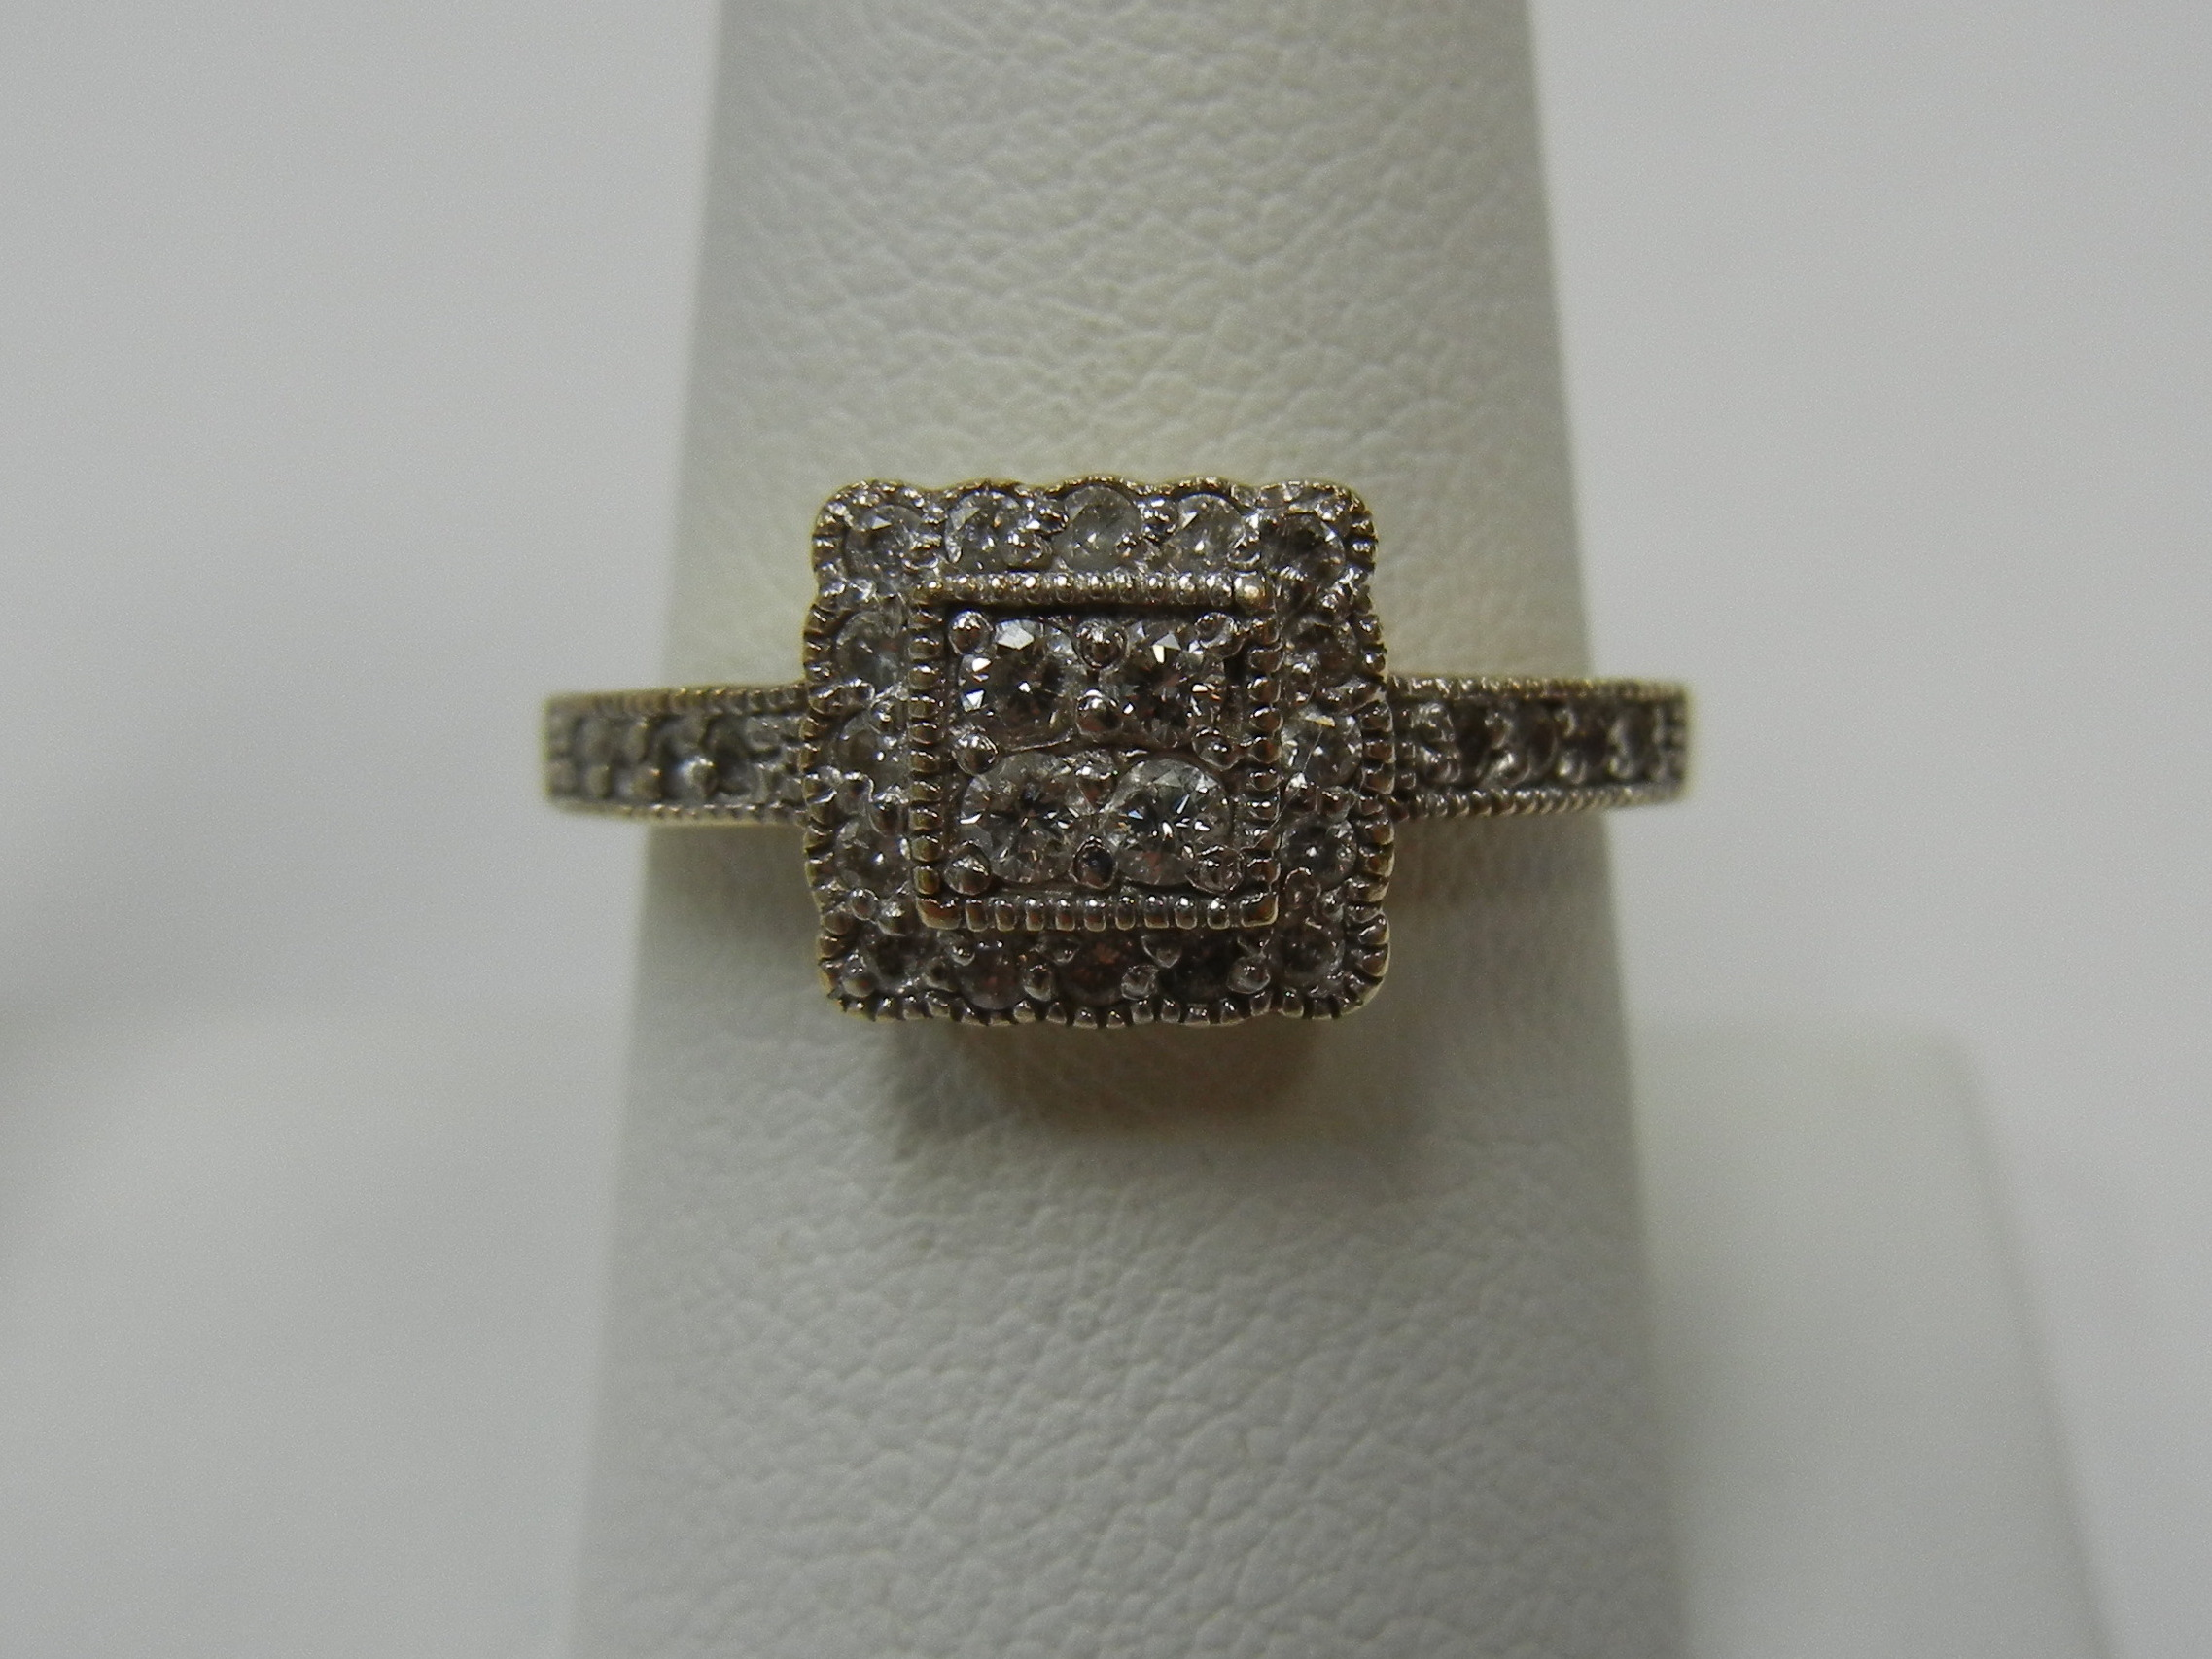 10 KT YELLOW GOLD CLUSTER RING - SIZE 7.5